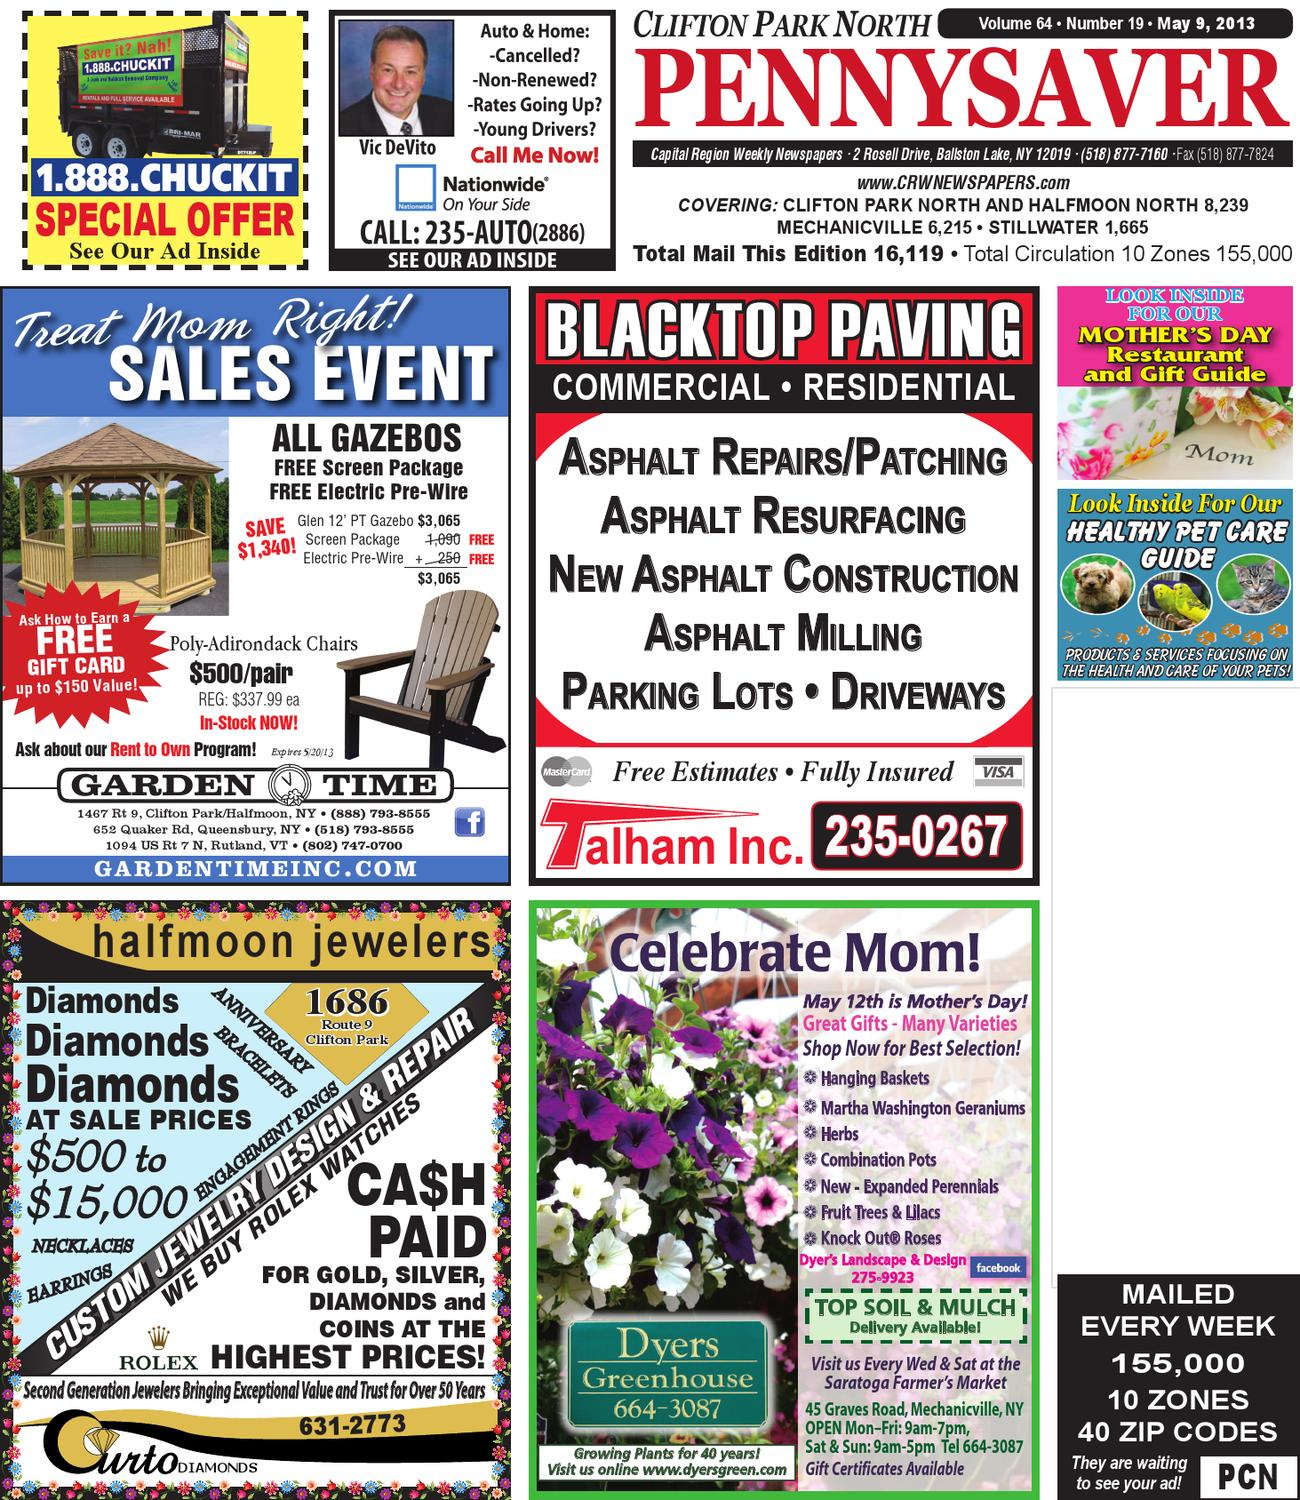 4d1abd202 Clifton Park North Pennysaver 050913 by Capital Region Weekly Newspapers -  issuu